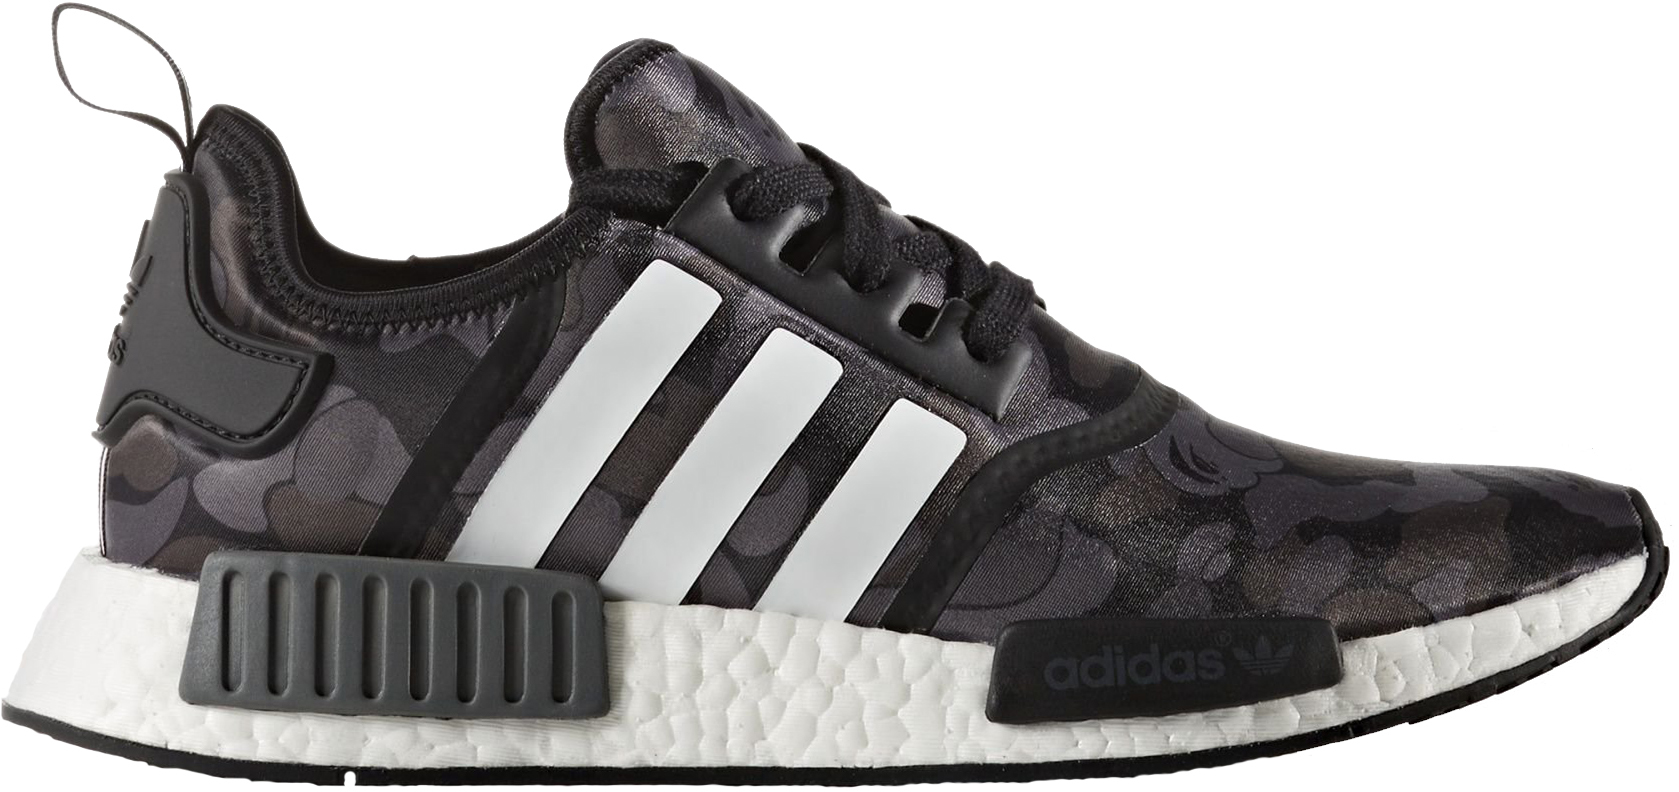 cheap nmd r1 shoes for sale buy cheap adidas nmd r1 boost online